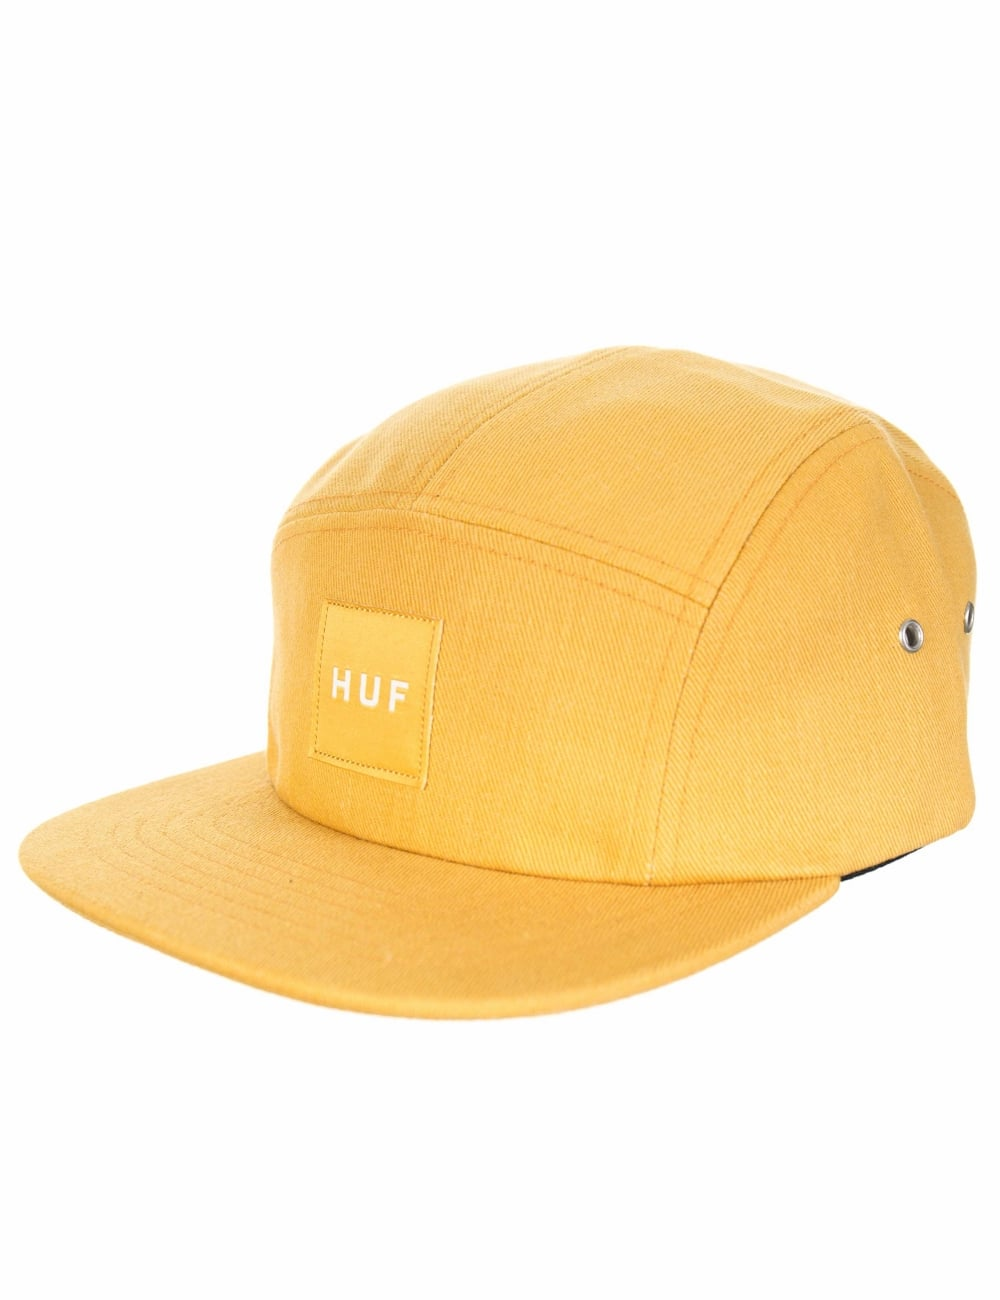 Huf Box Logo Volley Hat - Mustard - Accessories from Fat Buddha Store UK befa15652ec